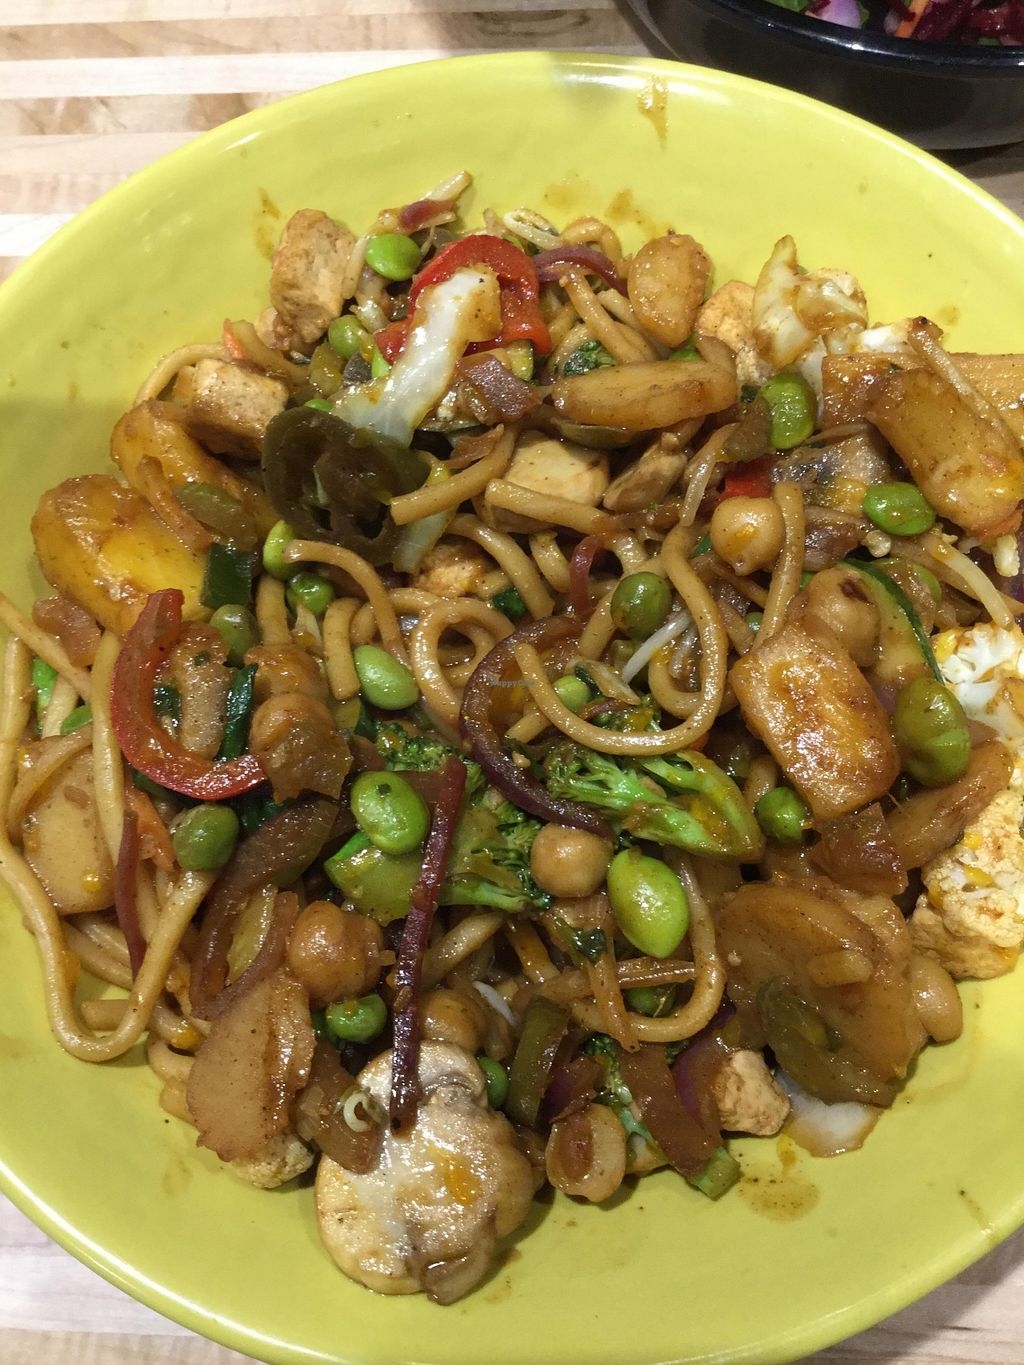 """Photo of The Good Food Store  by <a href=""""/members/profile/J%20and%20J"""">J and J</a> <br/>Wok bowl vegan <br/> February 27, 2016  - <a href='/contact/abuse/image/2185/137997'>Report</a>"""